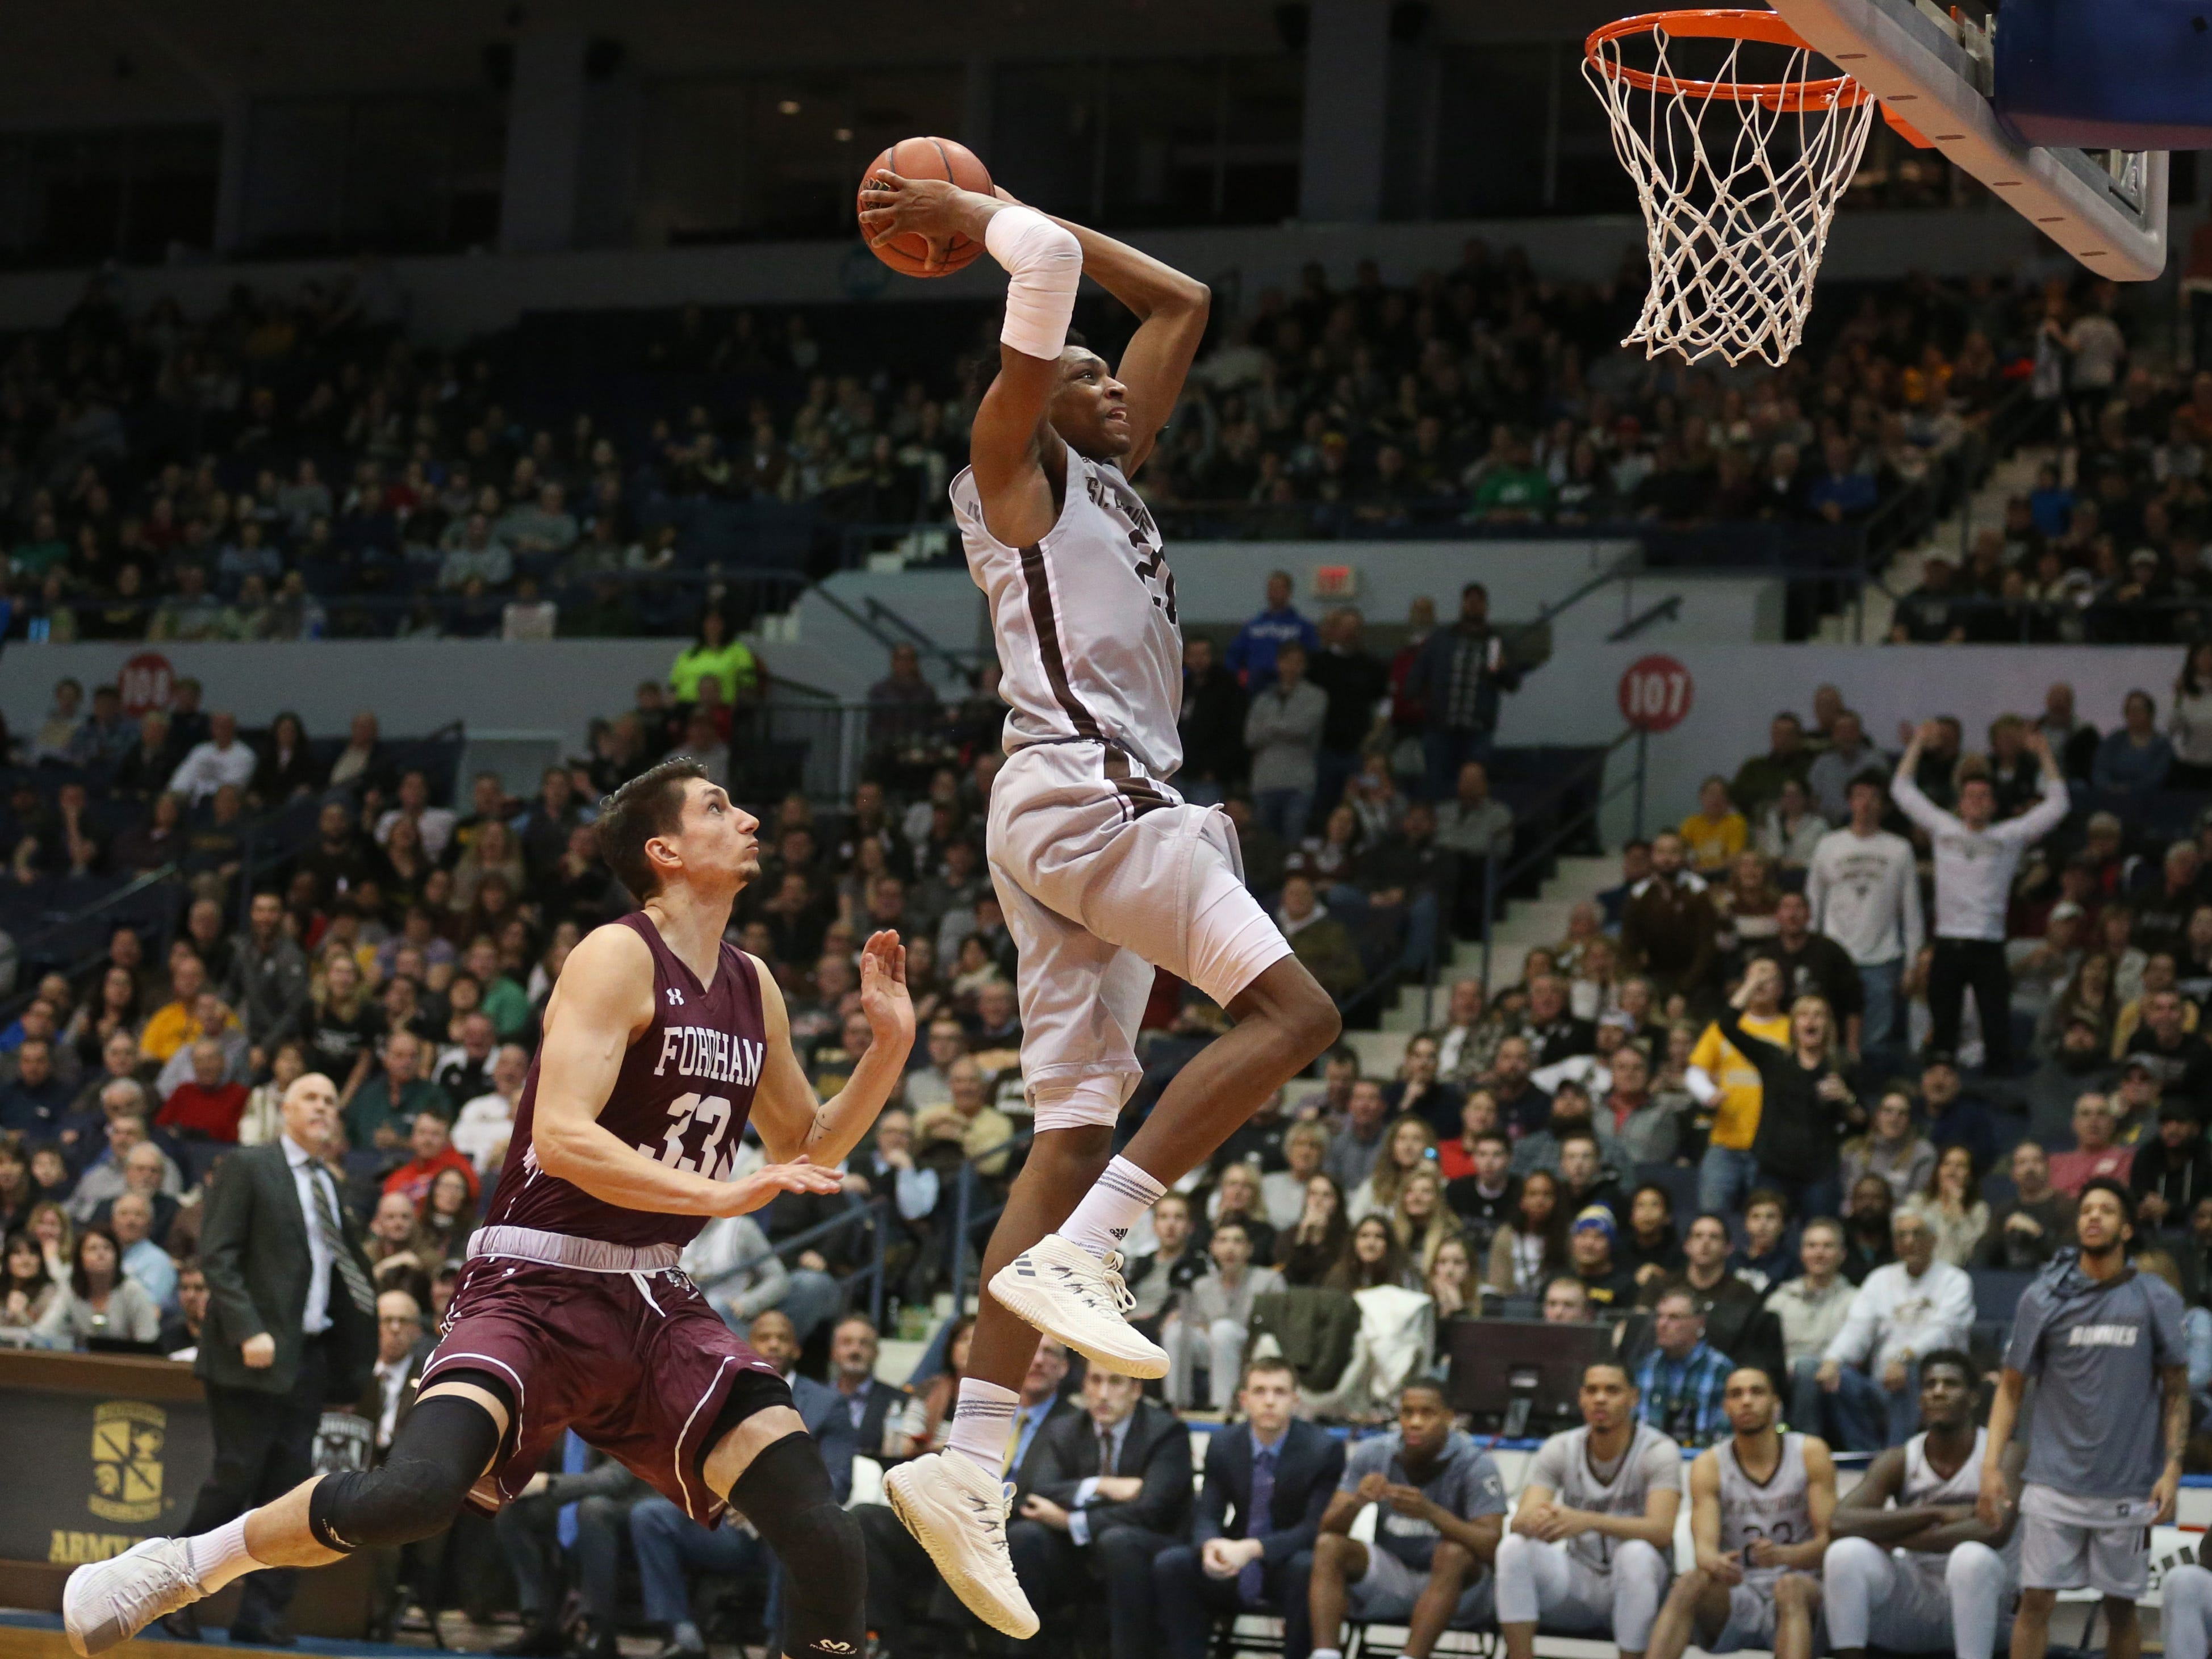 THE PHOTO: St. Bonaventure's Osun Osunniyi slams home the final two points of the game as he outraces Fordham's David Pekarek to the basket during their game at the Blue Cross Arena in Rochester Saturday, Jan. 12.  The Bonnies won the game 71-44. FROM SHAWN: What a great event to cover! Of all the dunk pictures I made during the game, this one was my favorite.  I love how both Bonnies players on the bench and fans in the stands are starting to rise up to celebrate as Osunniyi slams in the final points of the game.  This side angle to the basket really helps show the venue and crowd, and give more of a feeling for the atmosphere in the area that you don't get with a super tight action photo of a dunk.